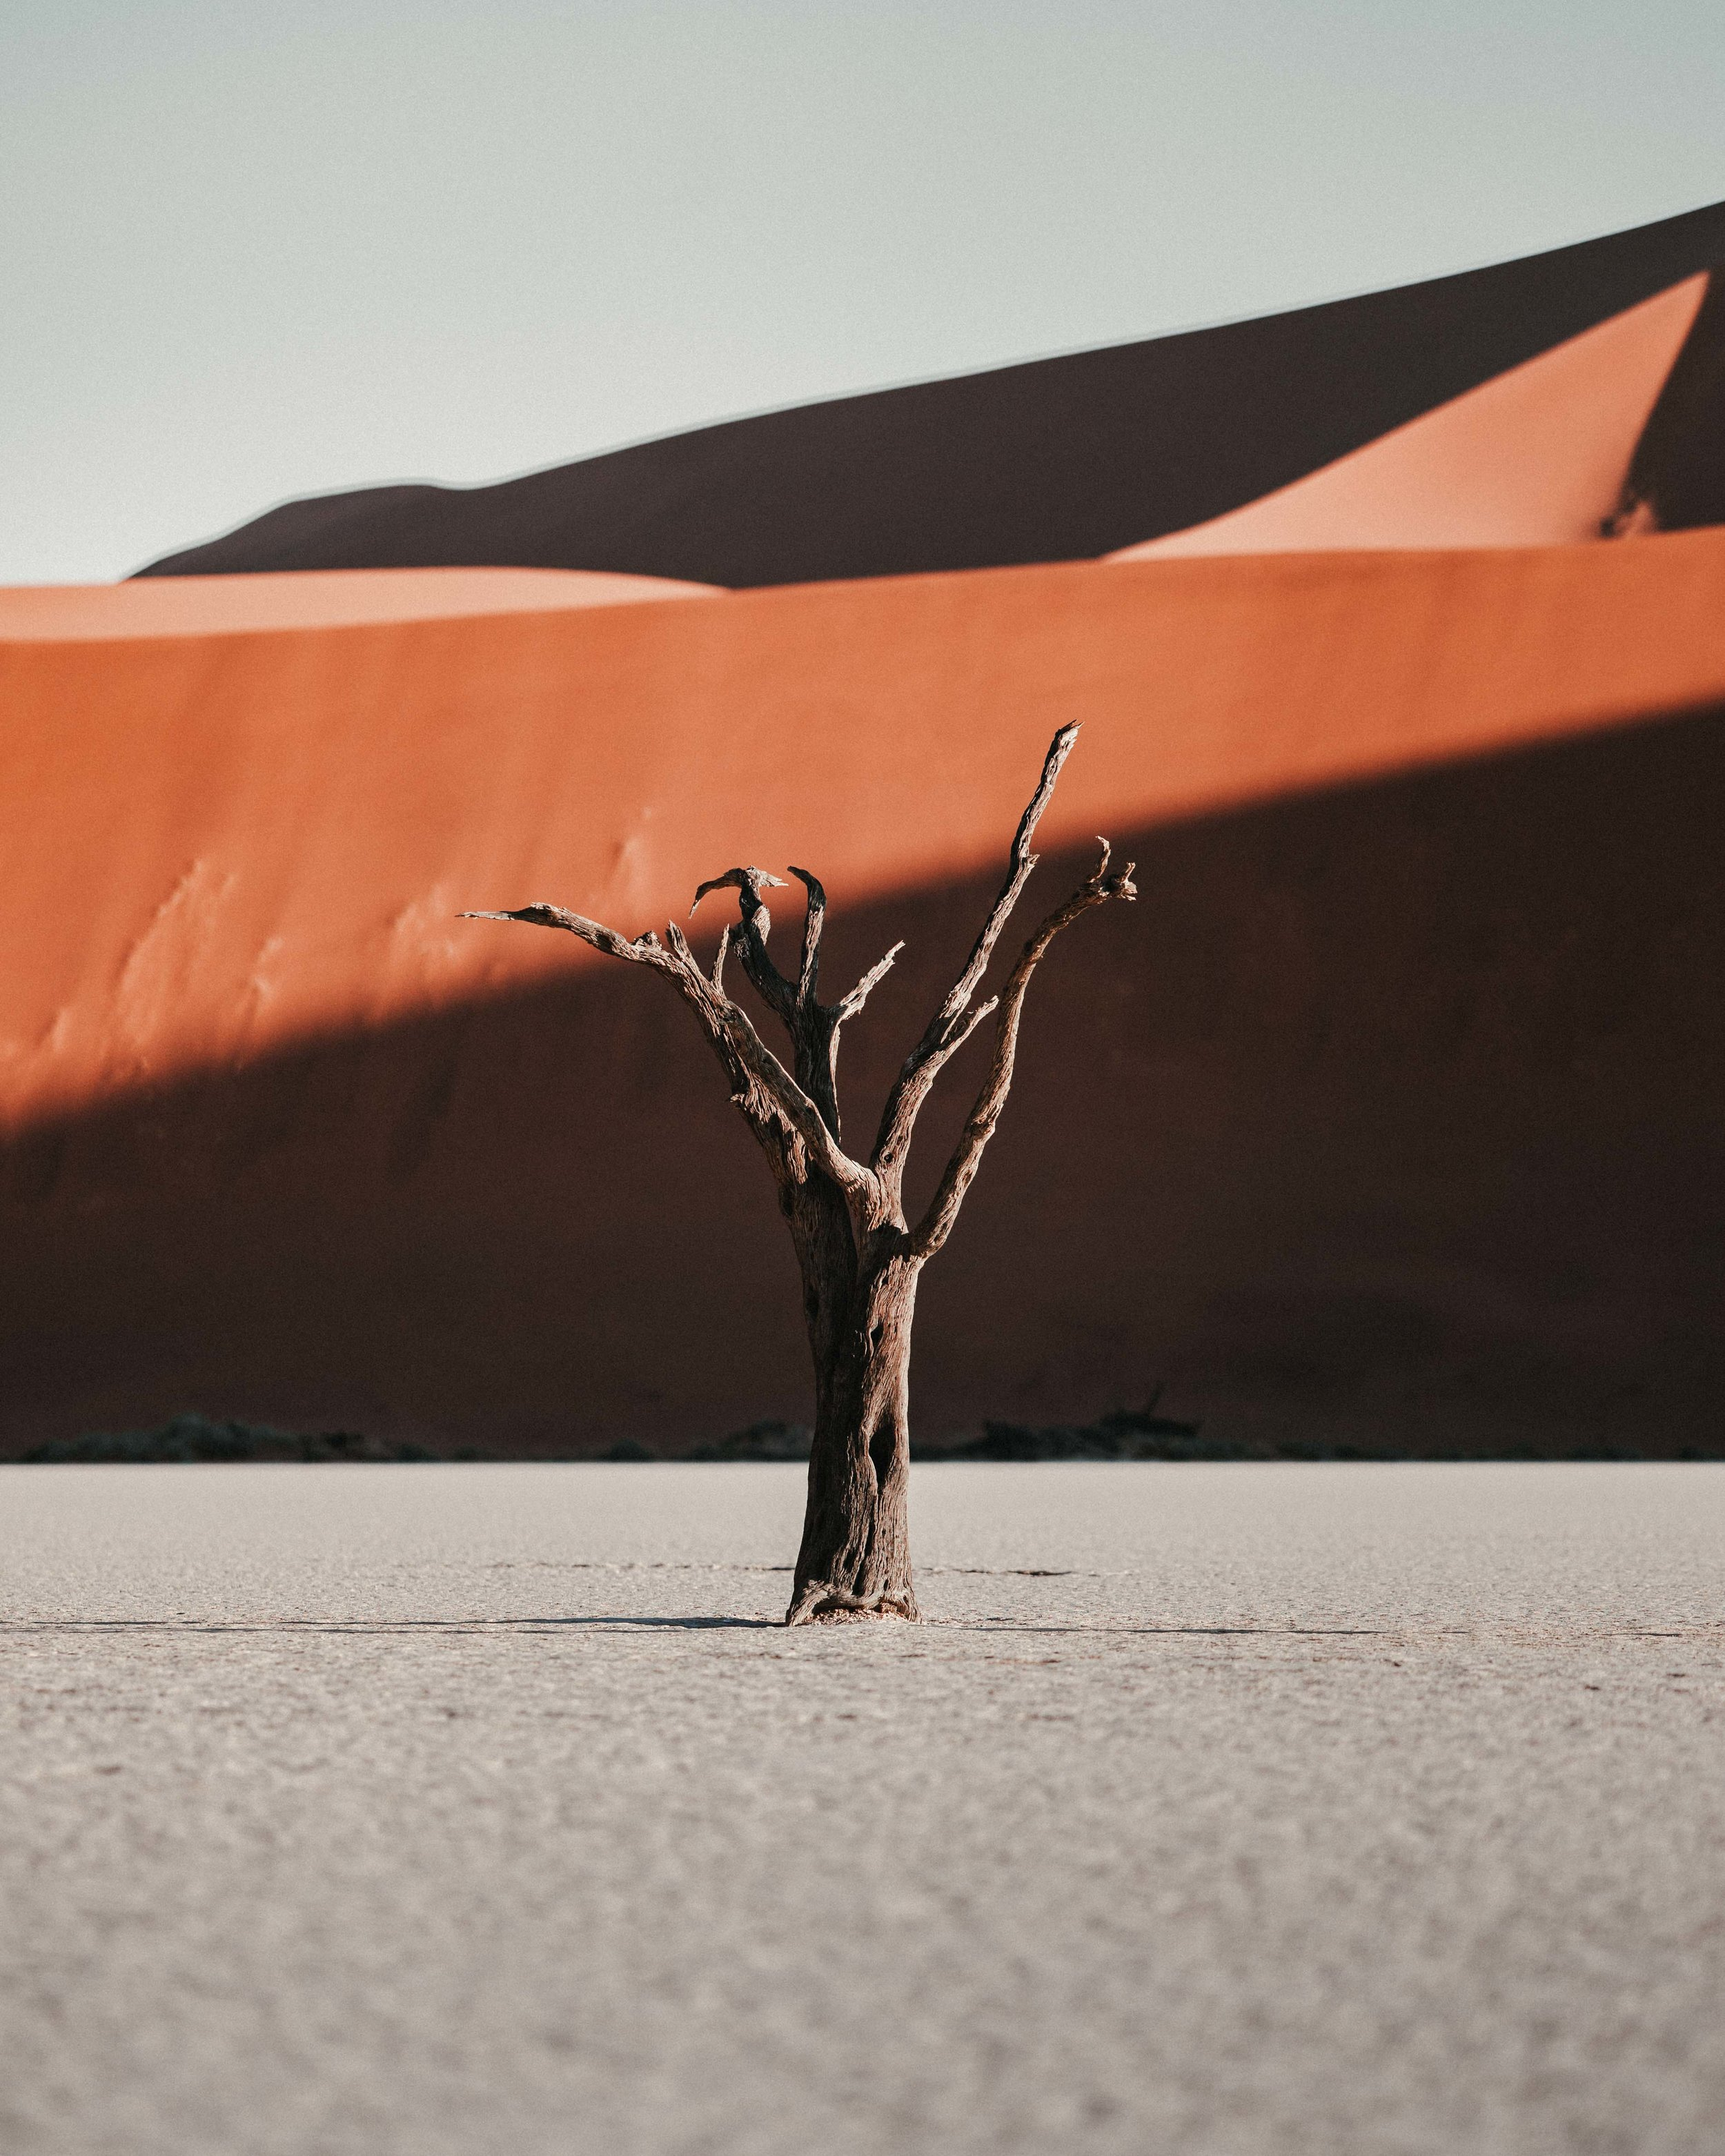 Deadvlei, Namibia. Sony A7Riii @ F1.8 - 1/4000 second - 50 ISO.